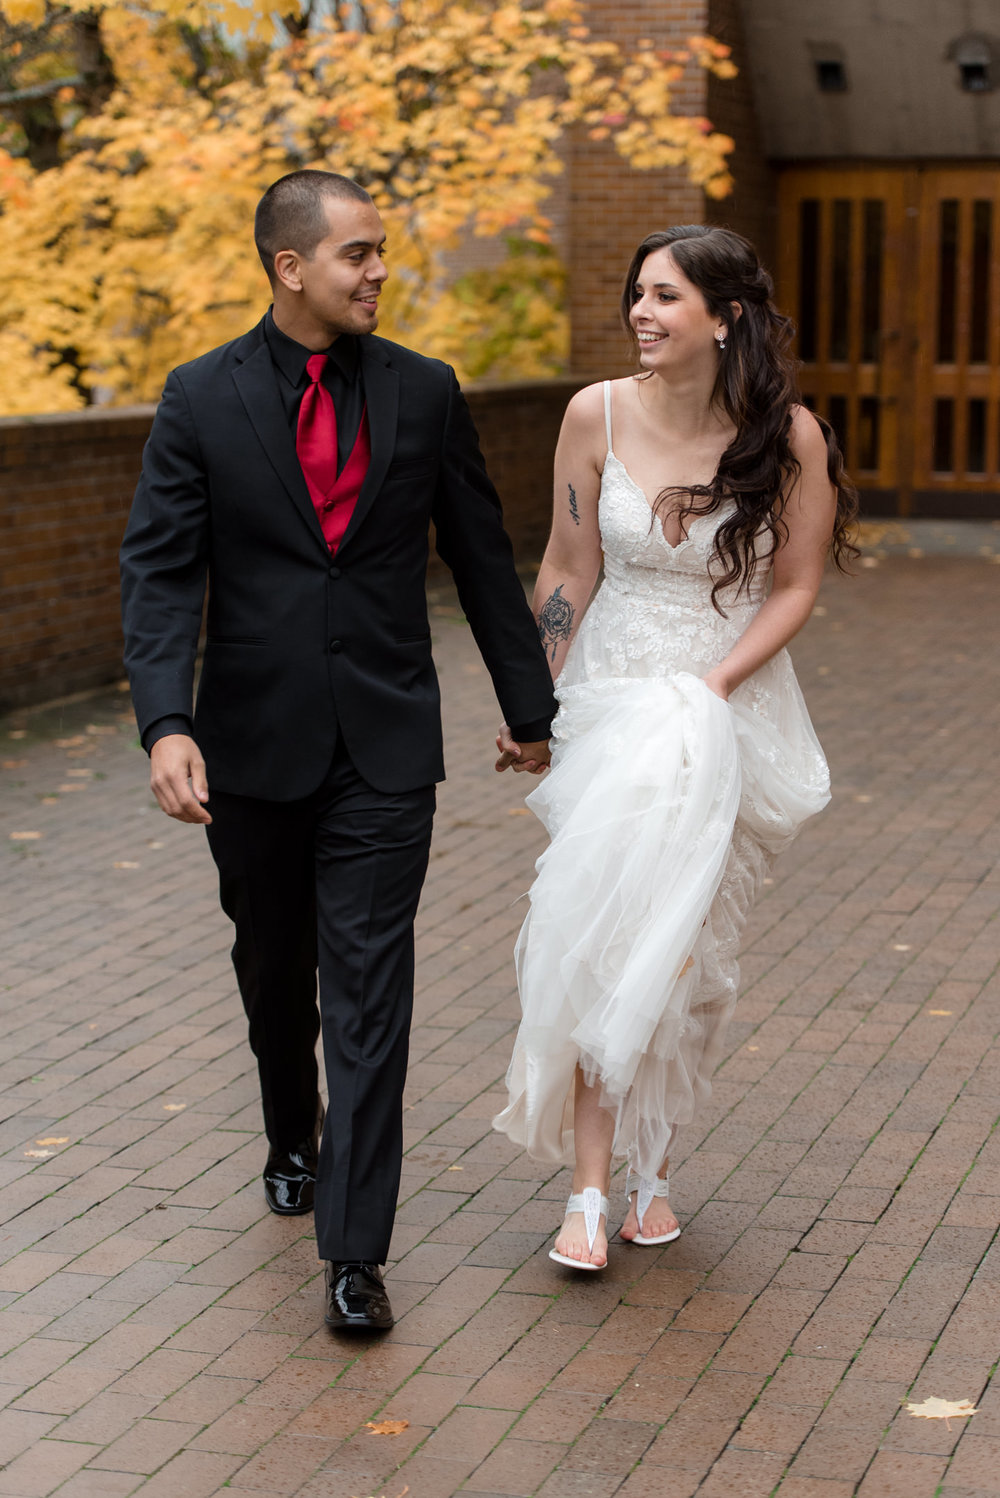 Bride and Mexican Groom Wedding Walk at University of Washington